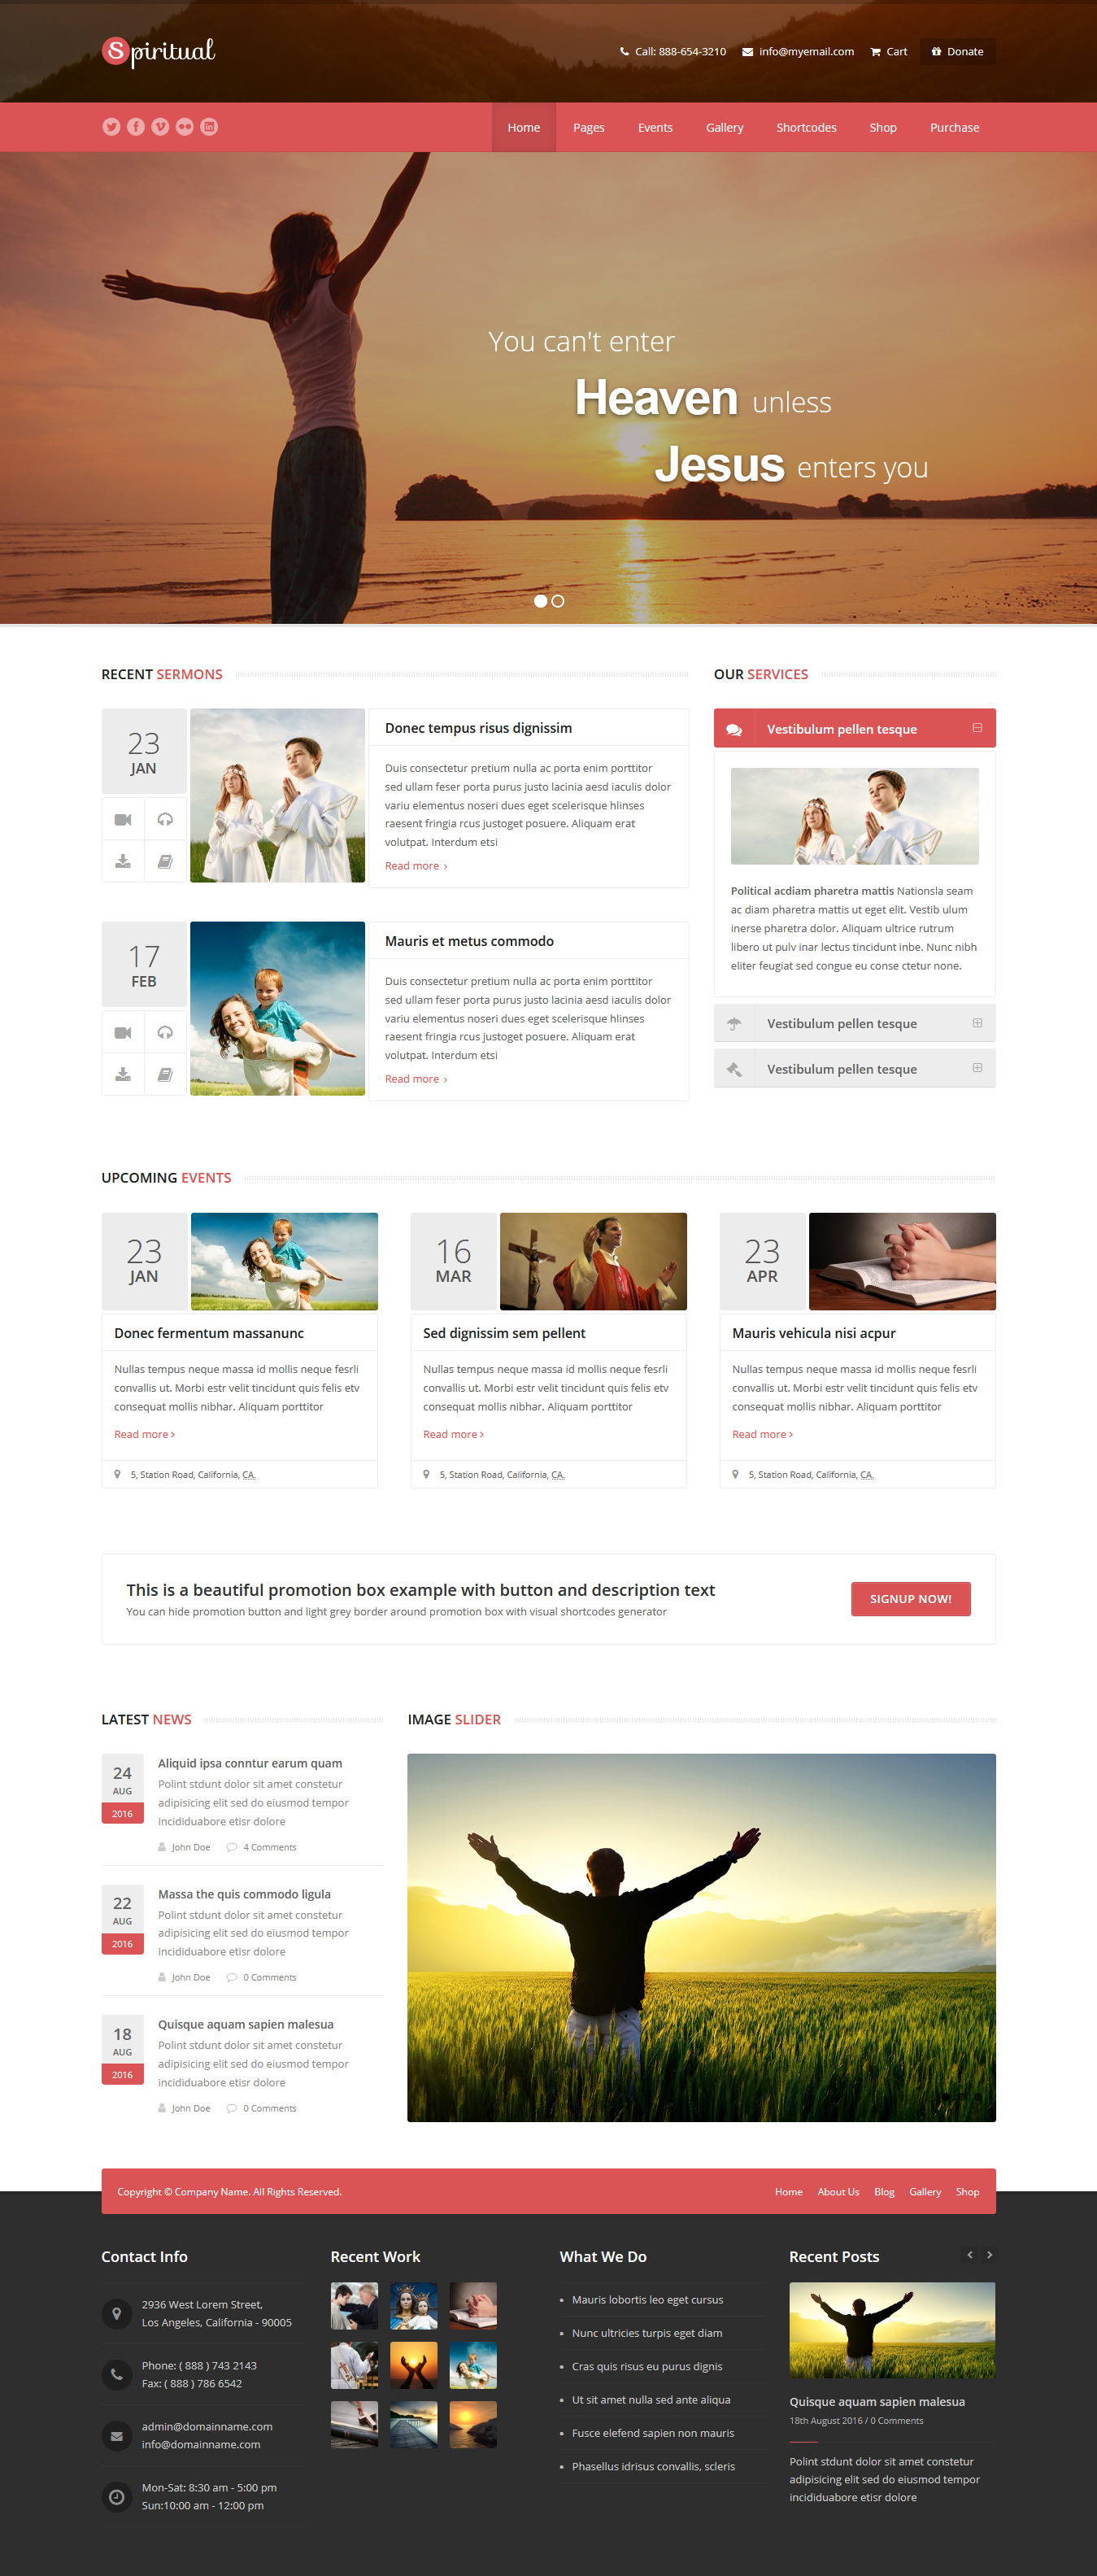 Spiritual - Best Premium Church WordPress Theme